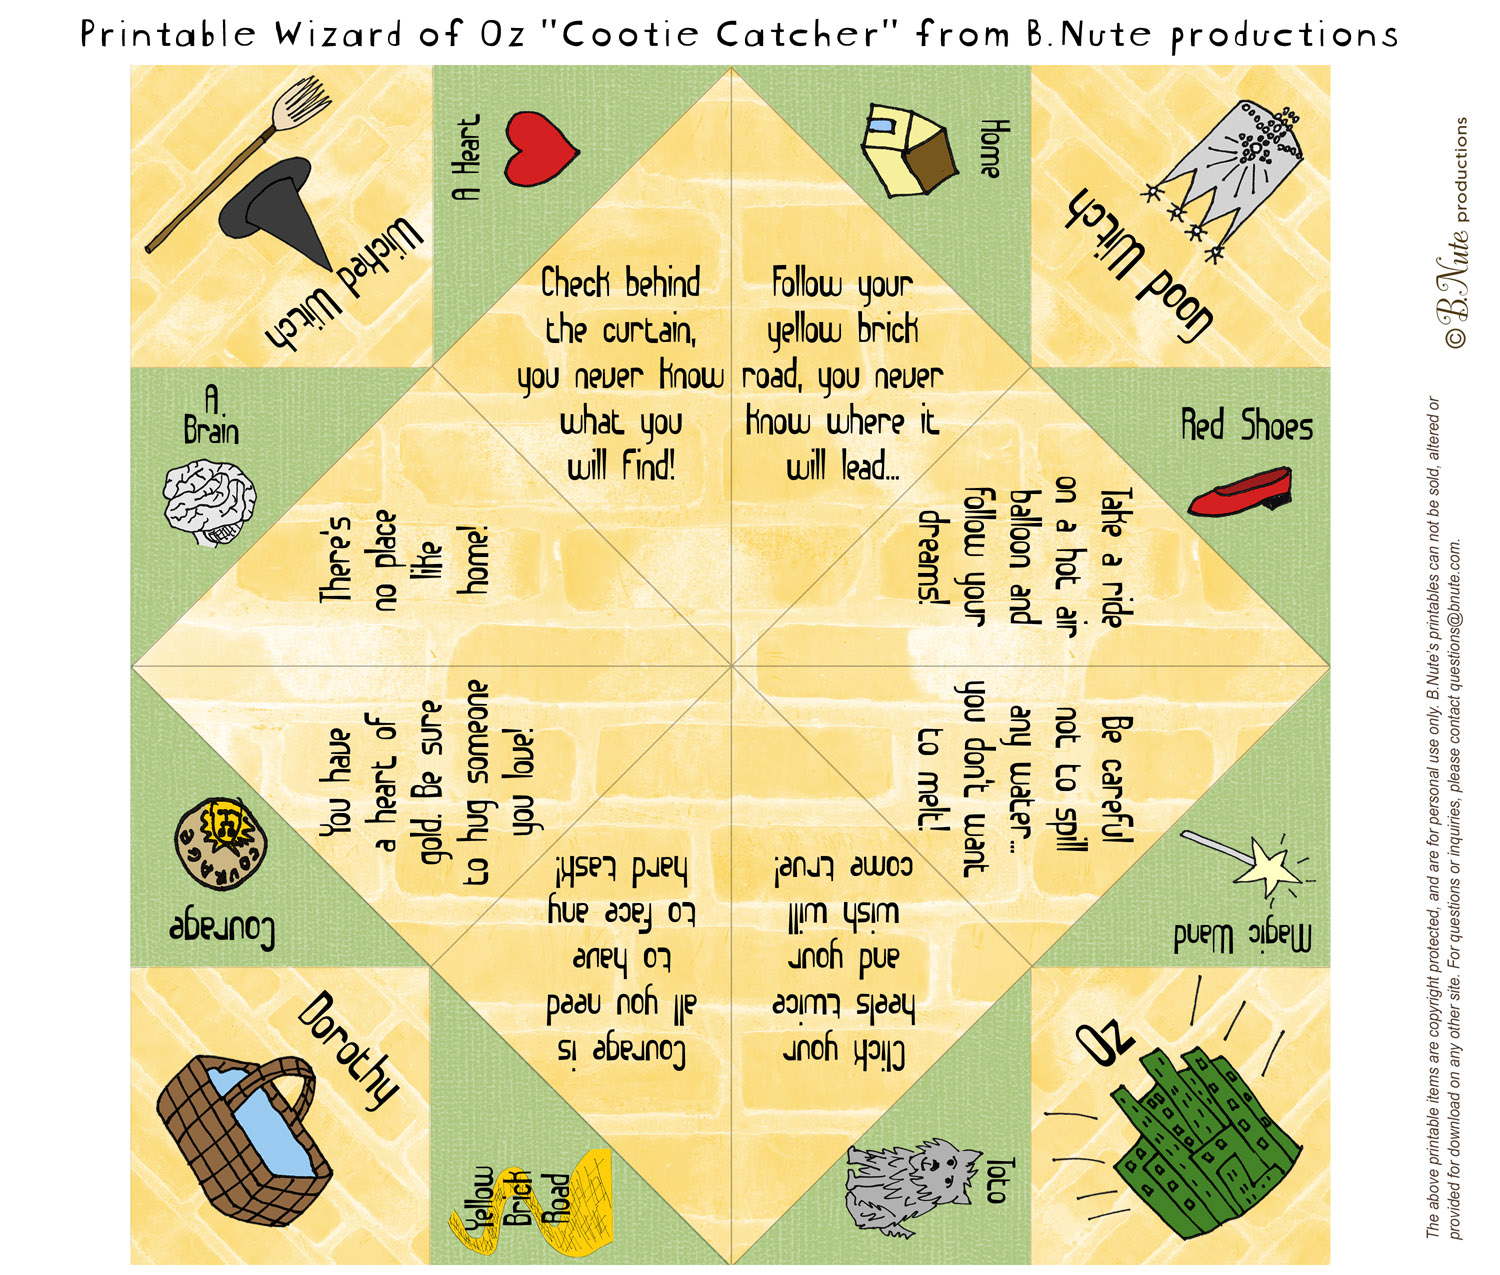 picture about Cootie Catcher Printable named bnute productions: Free of charge Printable Wizard of Oz Cootie